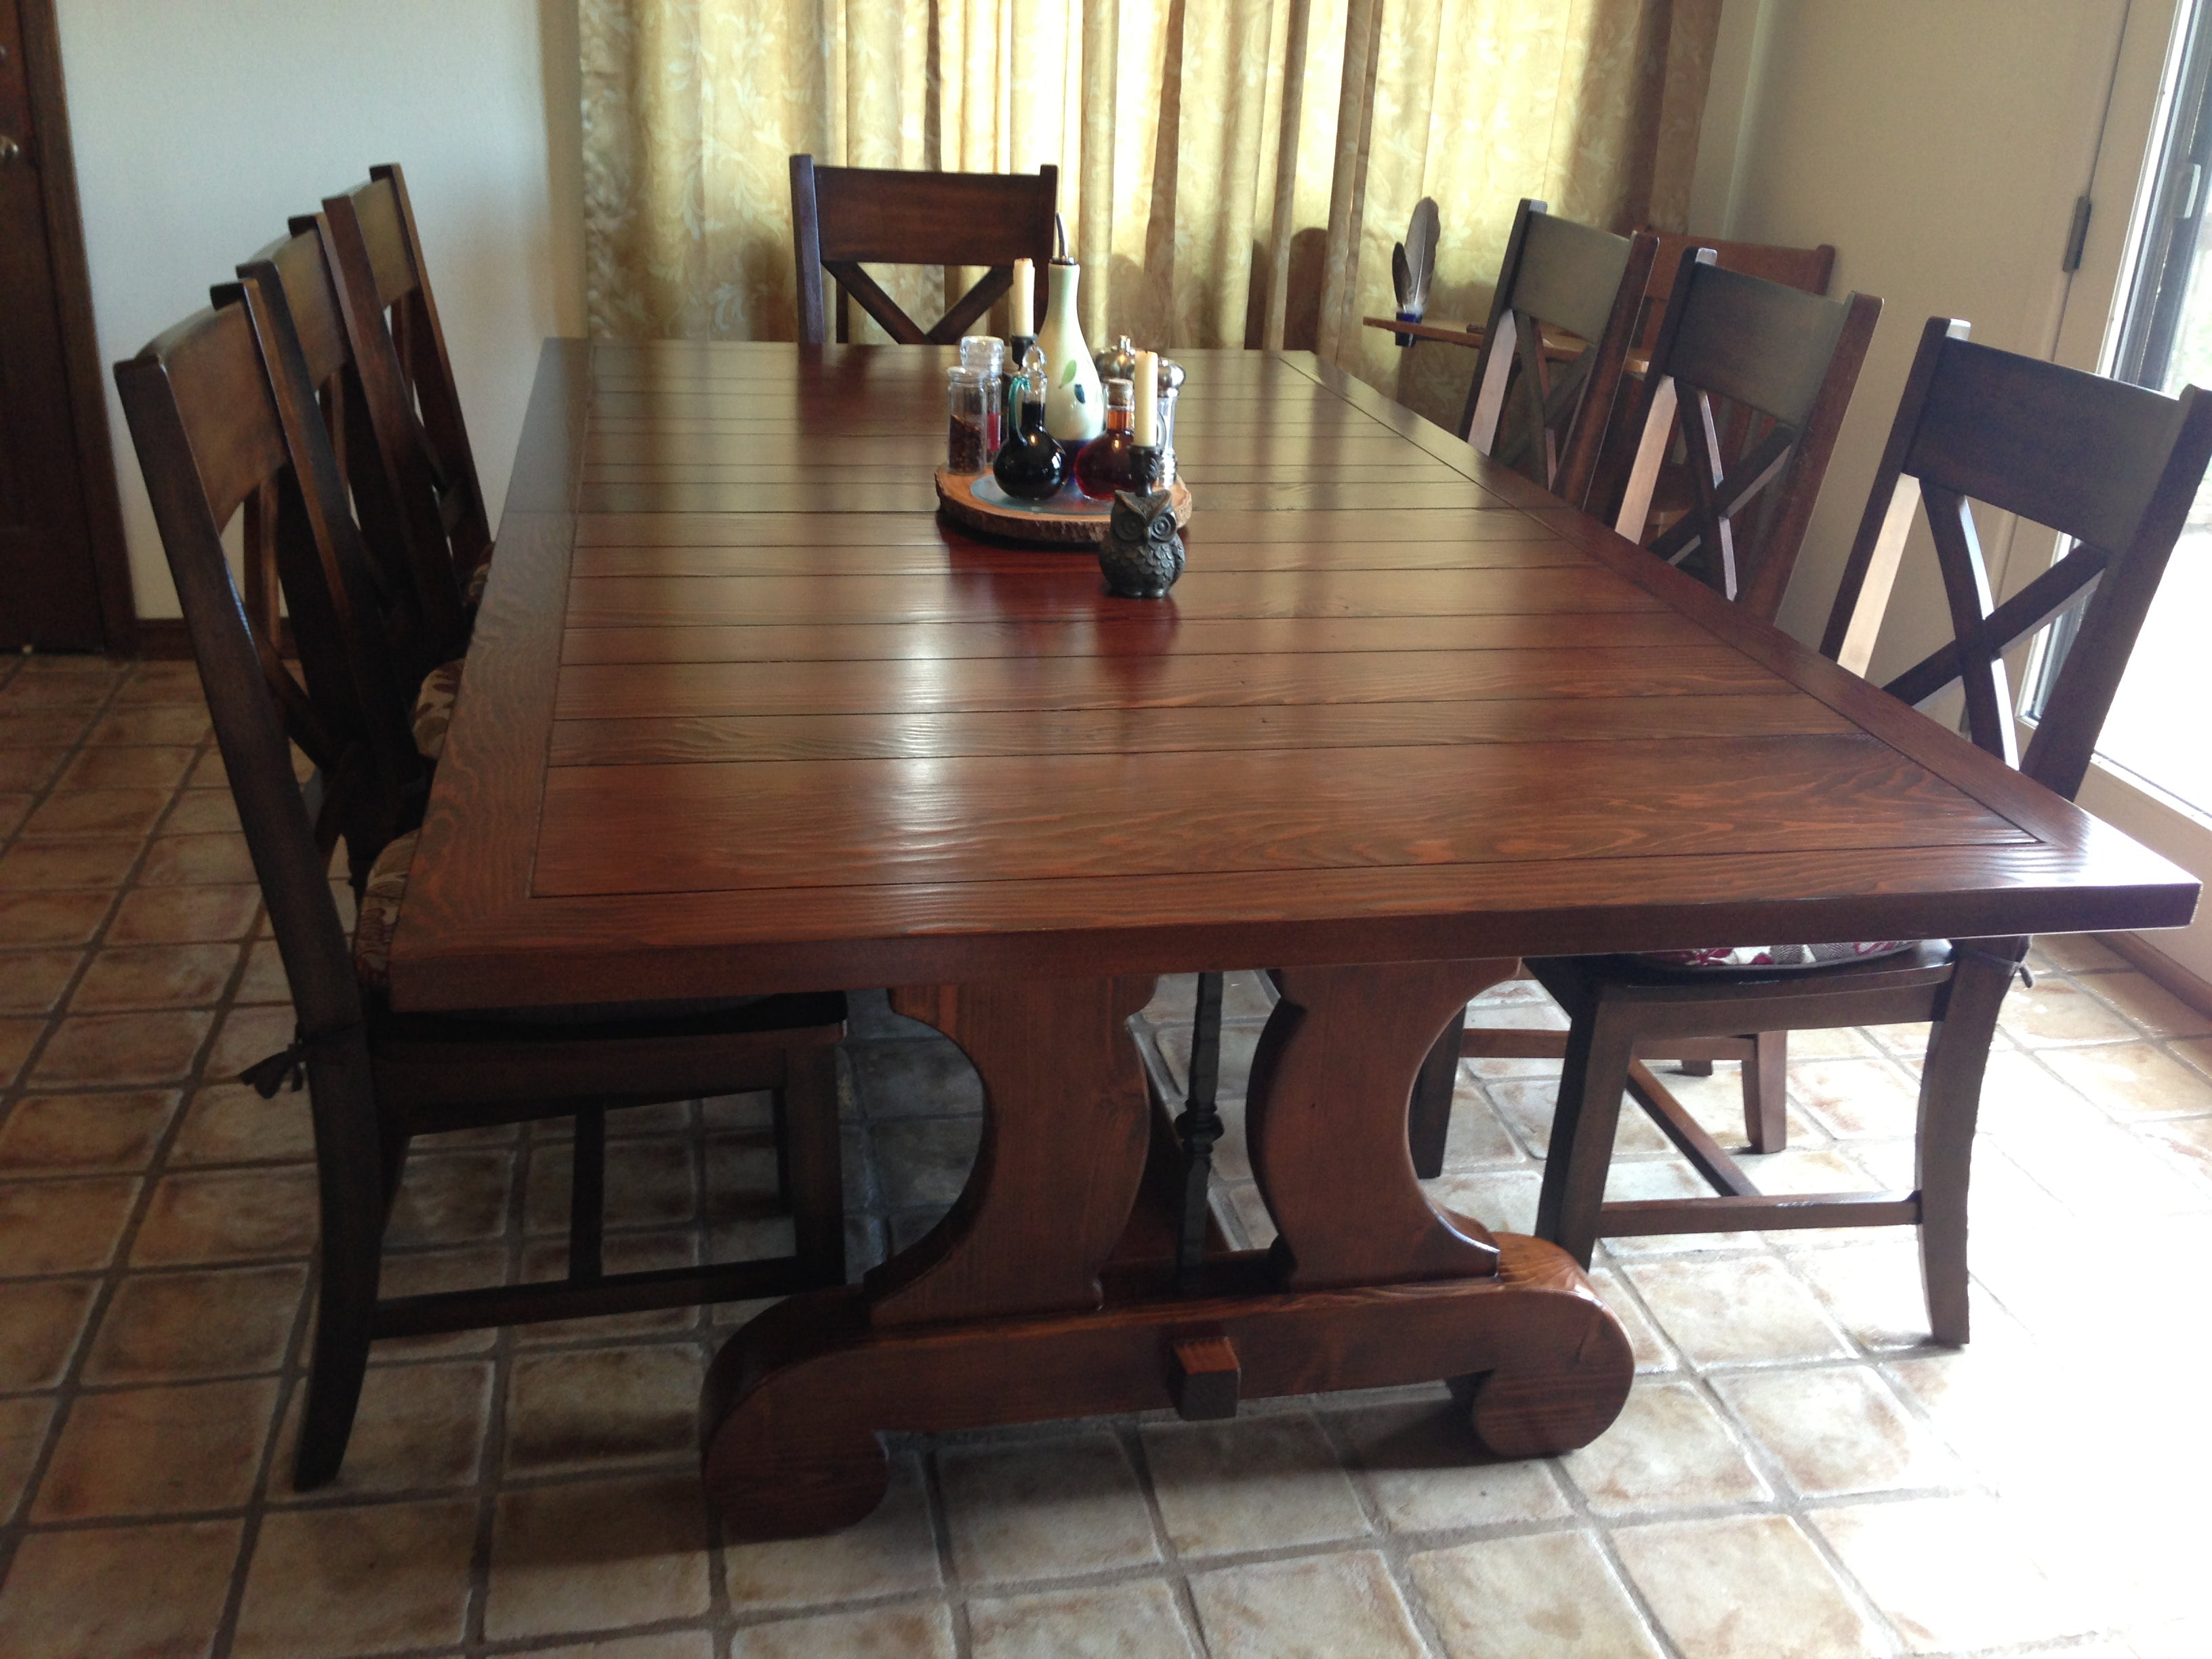 ... Lourdes Plank Top Trestle Dining Table In Reclaimed Wood